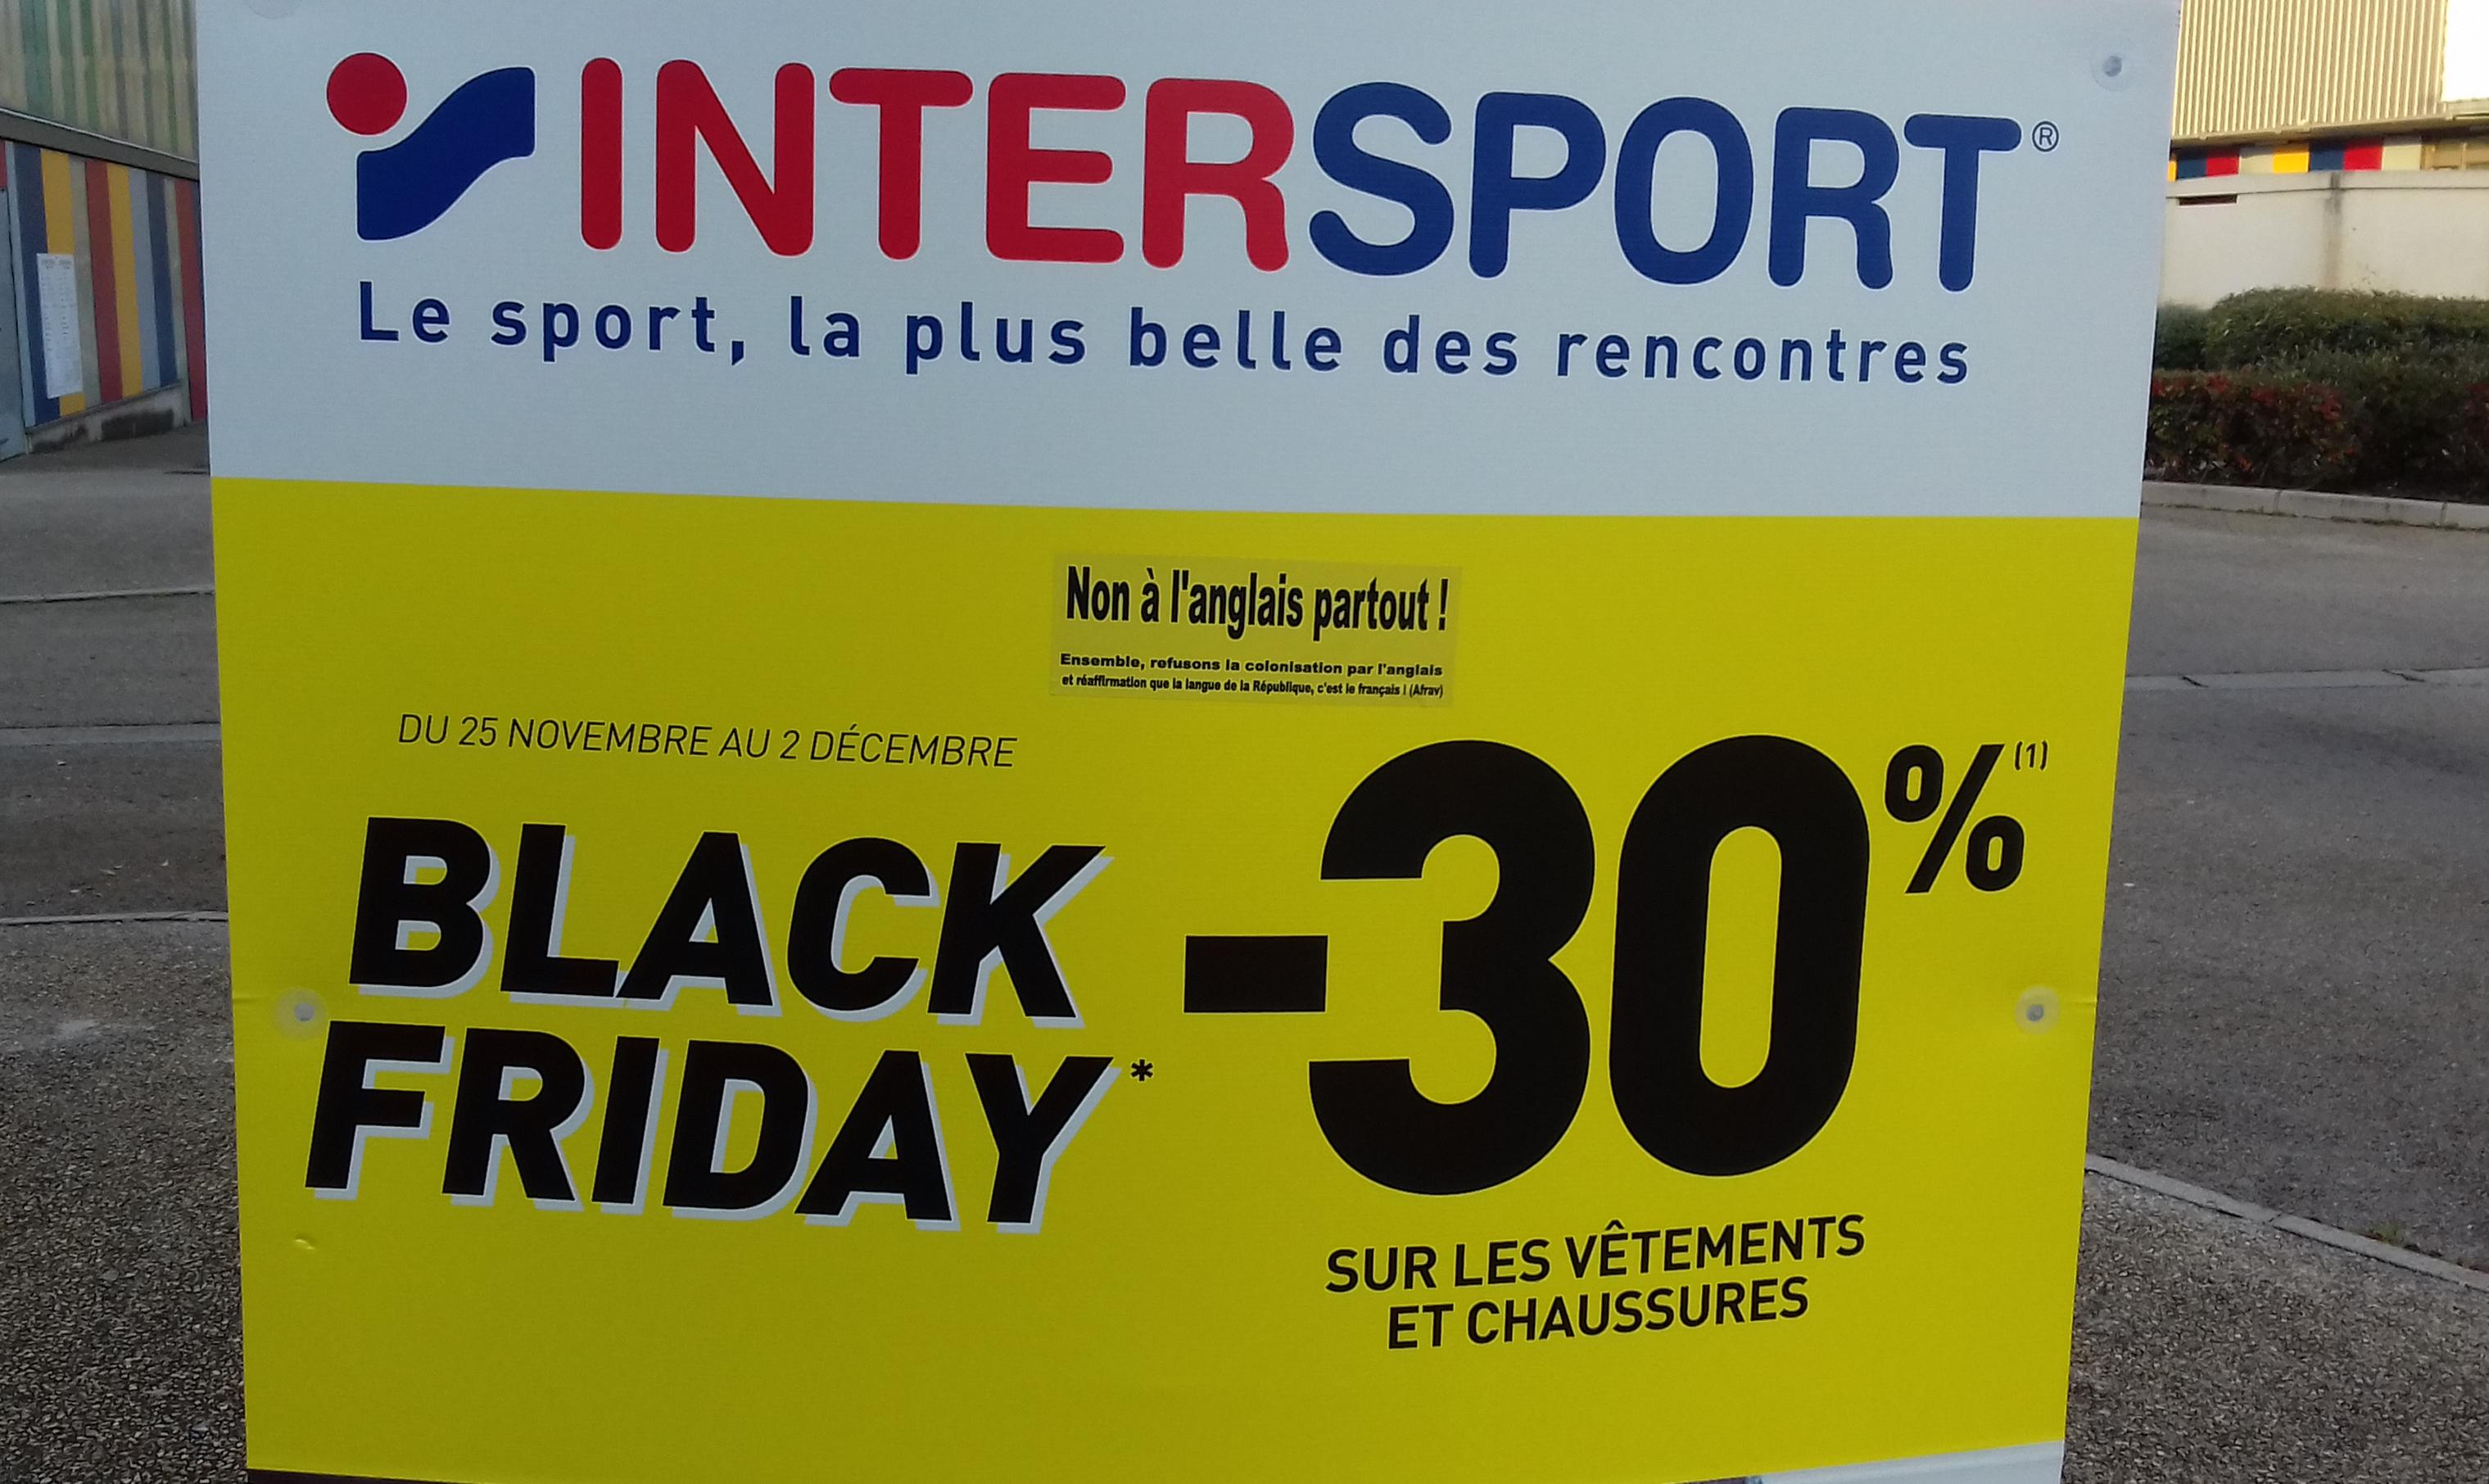 InterSport, les promotions, la publicité